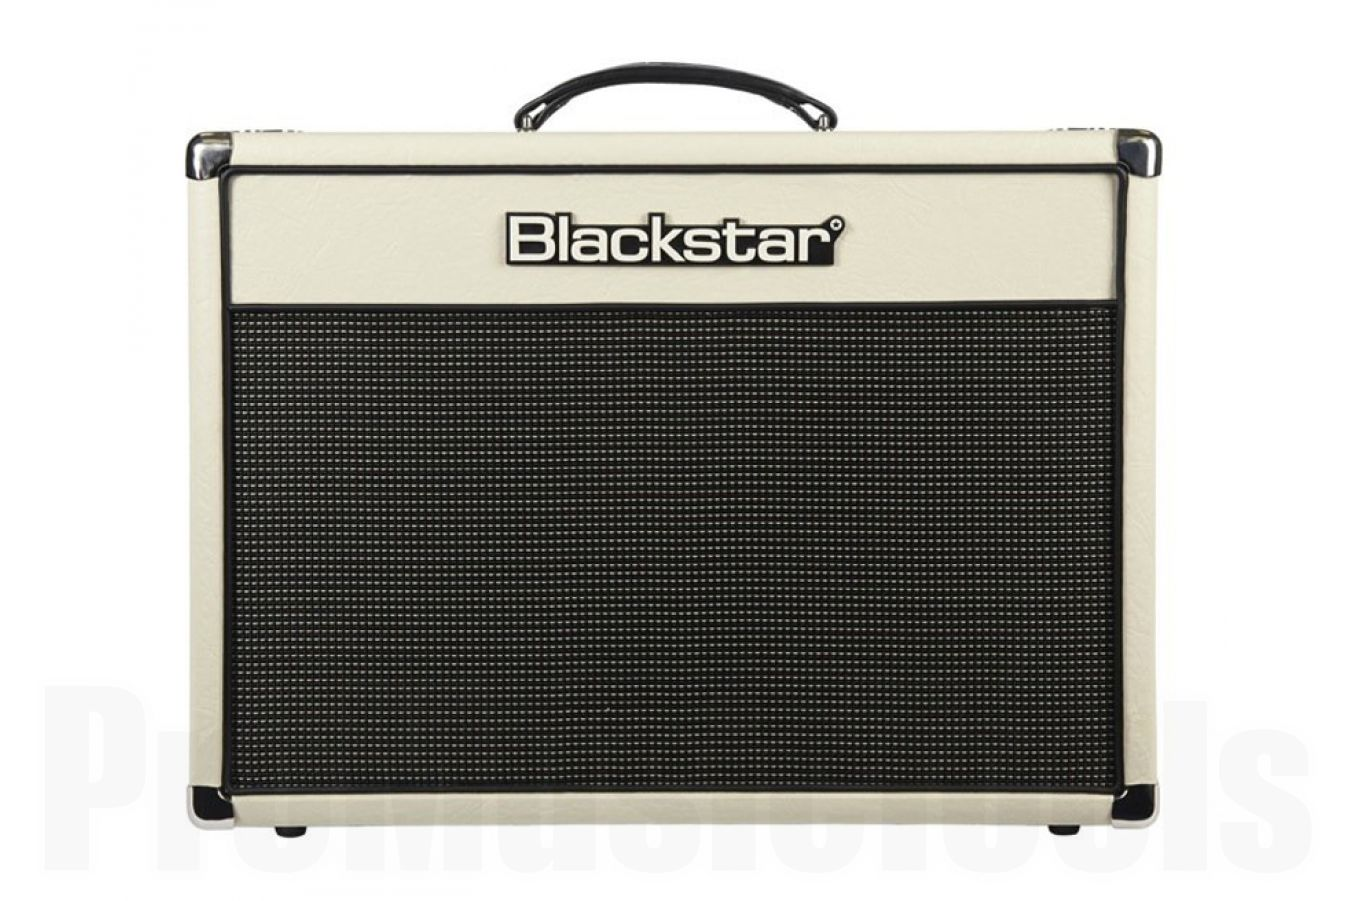 Blackstar HT-5TH 2x10 Combo - Anniversary Limited Edition